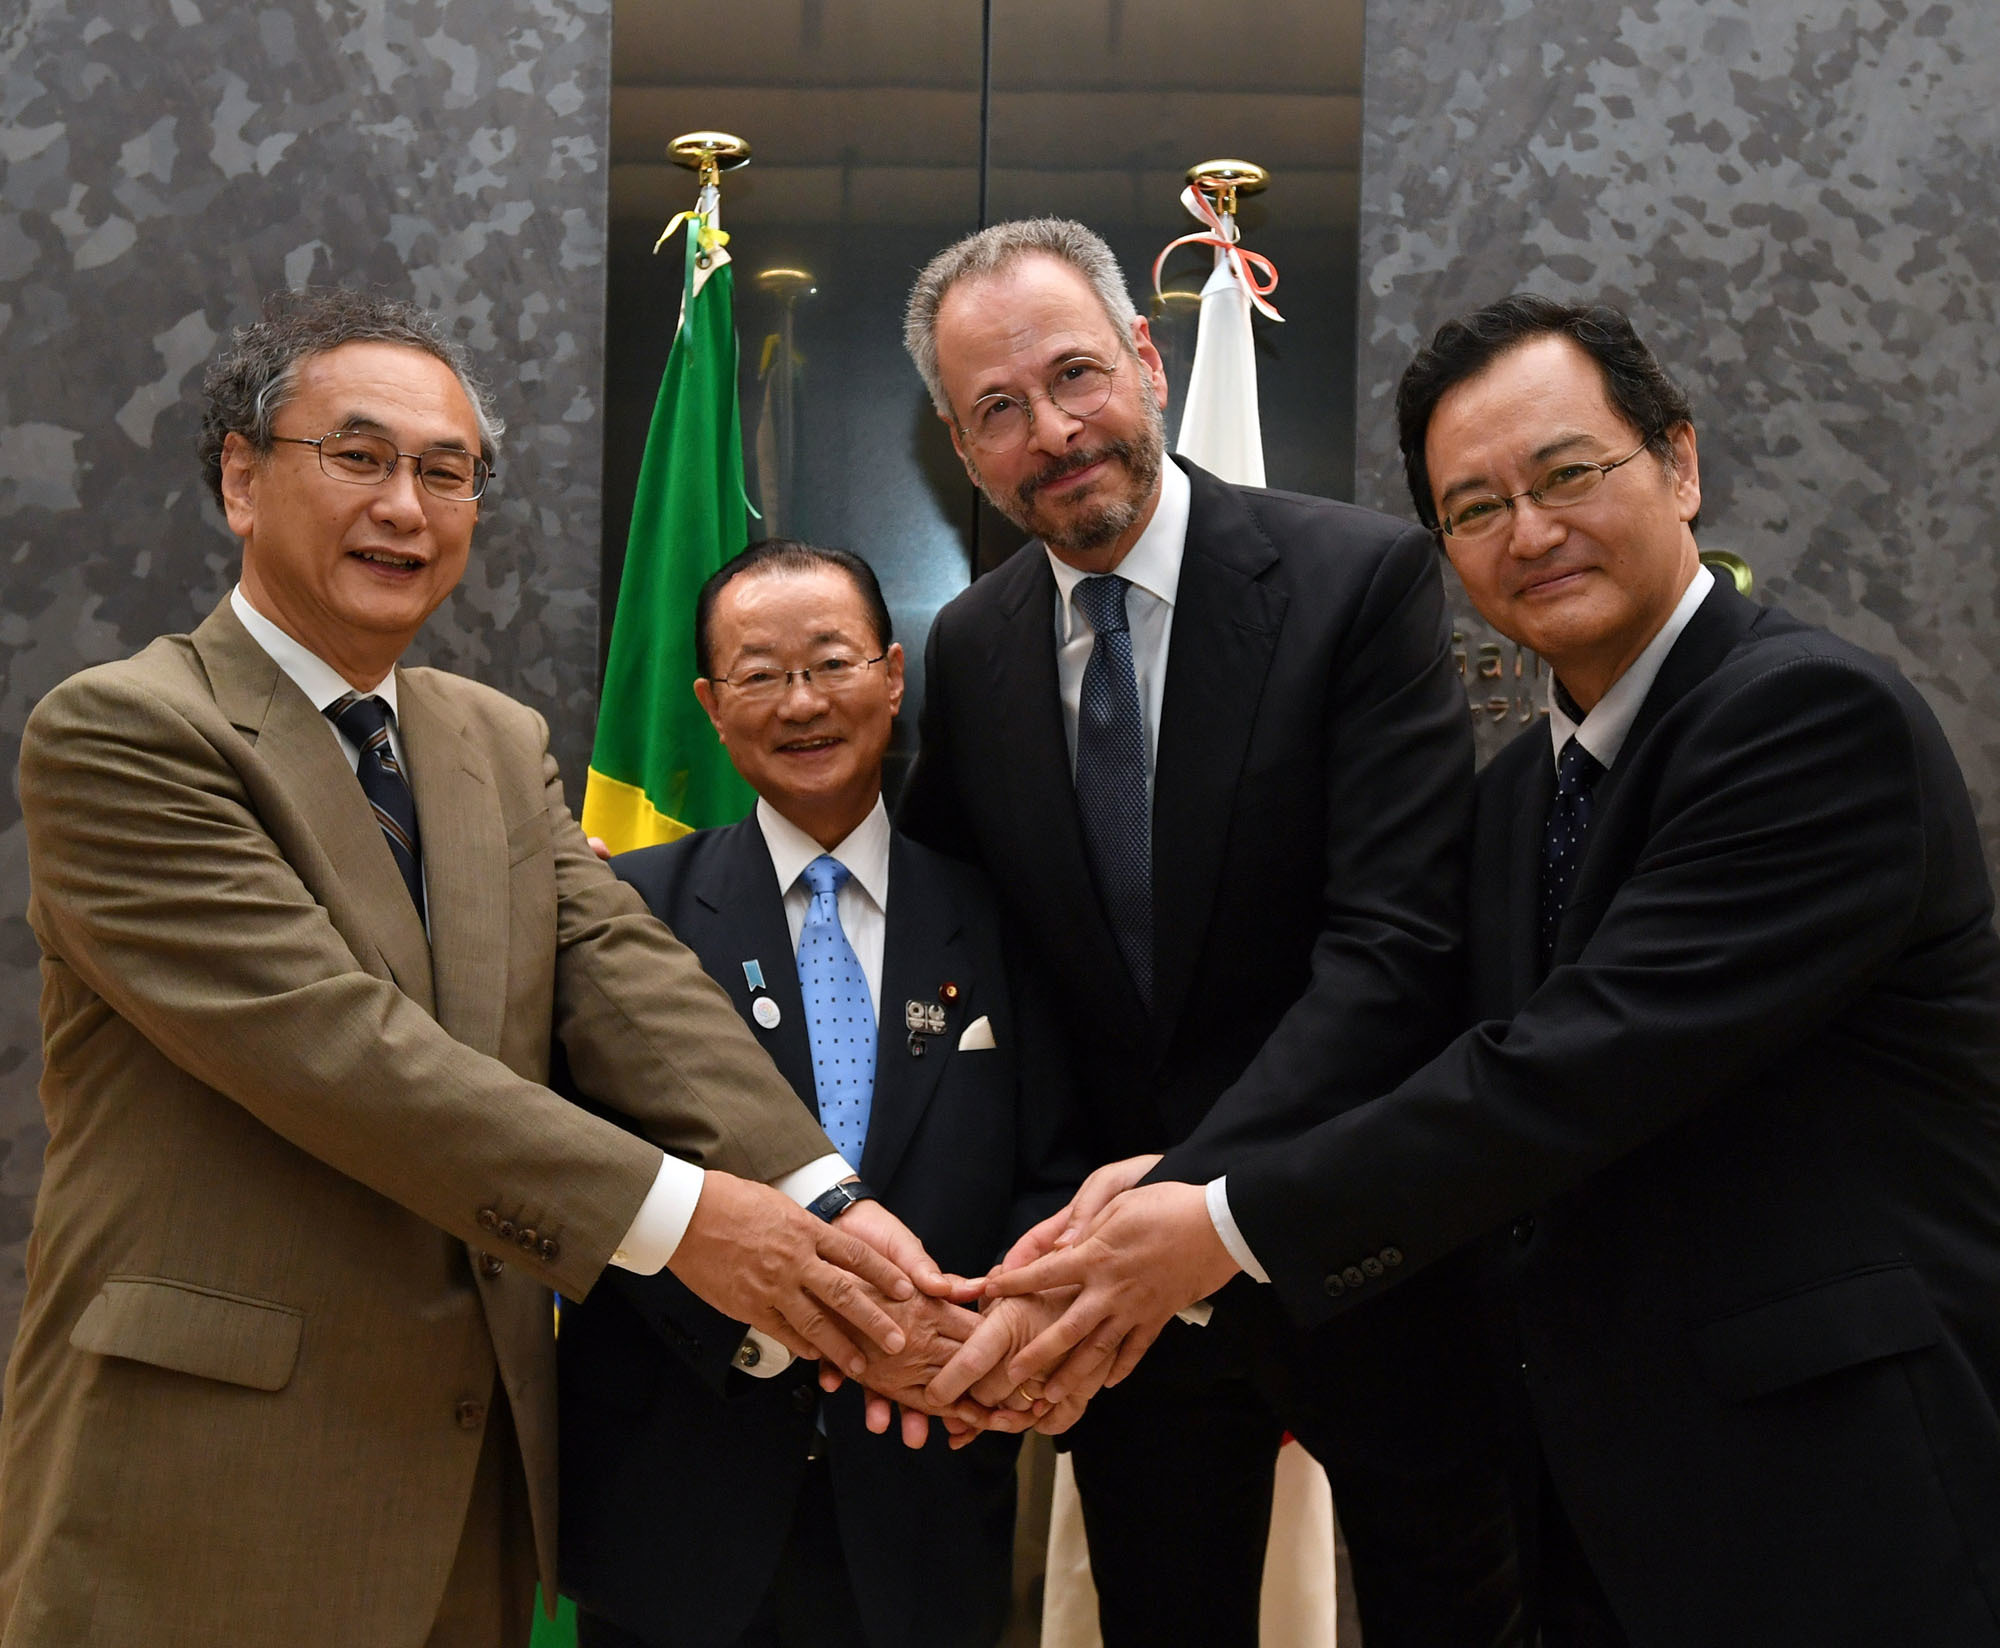 Brazilian Ambassador Andre Correa do Lago (second from right) poses for a picture with (from right) Latin American and Caribbean Affairs Bureau Director-General Takahiro Nakamae; Takeo Kawamura, vice chairman of the Japan-Brazil Parliamentary Friendship League; and Toyojiro Hida, director of the Tokyo Metropolitan Teien Art Museum, during a reception to celebrate Brazil's national day at the Tokyo Metropolitan Teien Art Museum on Sept. 7. |  YOSHIAKI MIURA